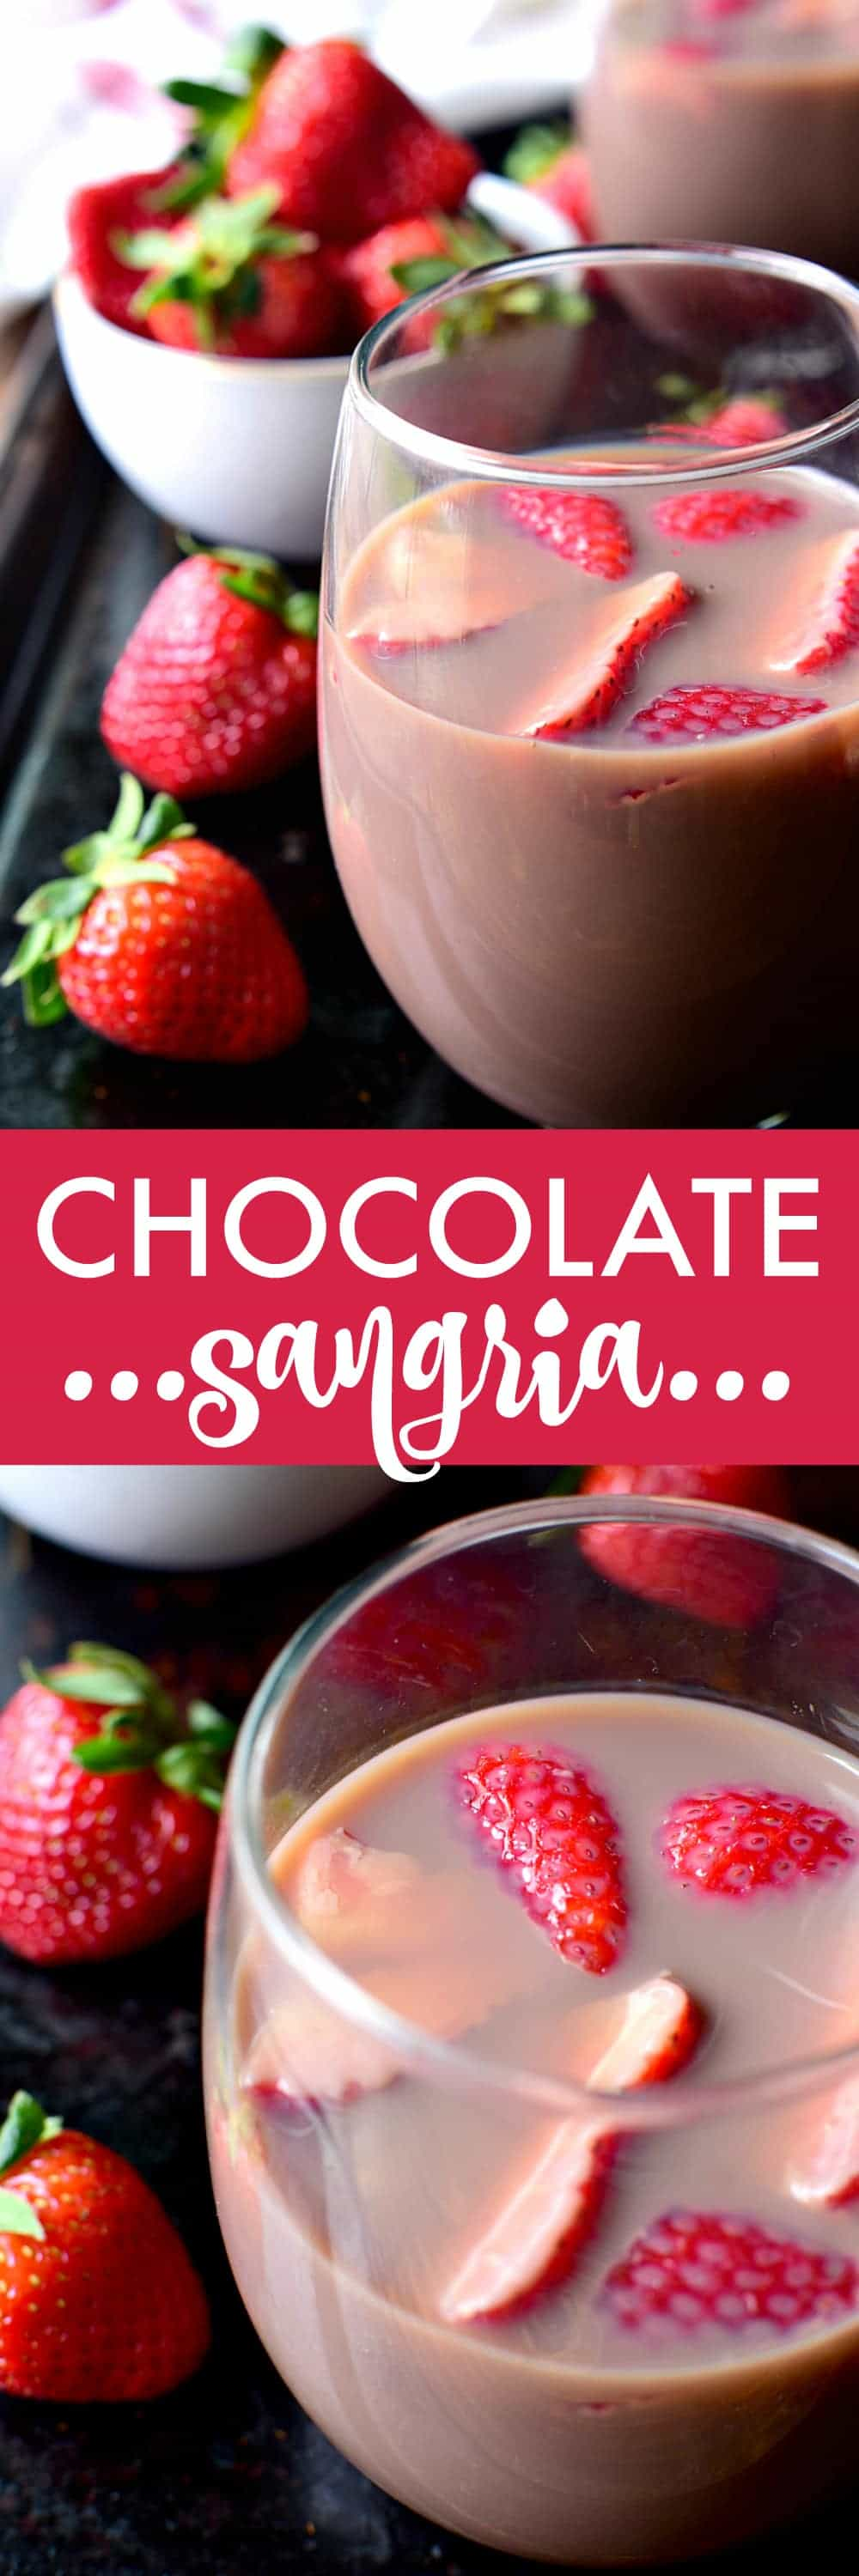 Chocolate Sangria - made with just 3 ingredients and garnished with fresh strawberries! This sangria is the ultimate rich, creamy, chocolatey cocktail....perfect for Valentine's Day or just because